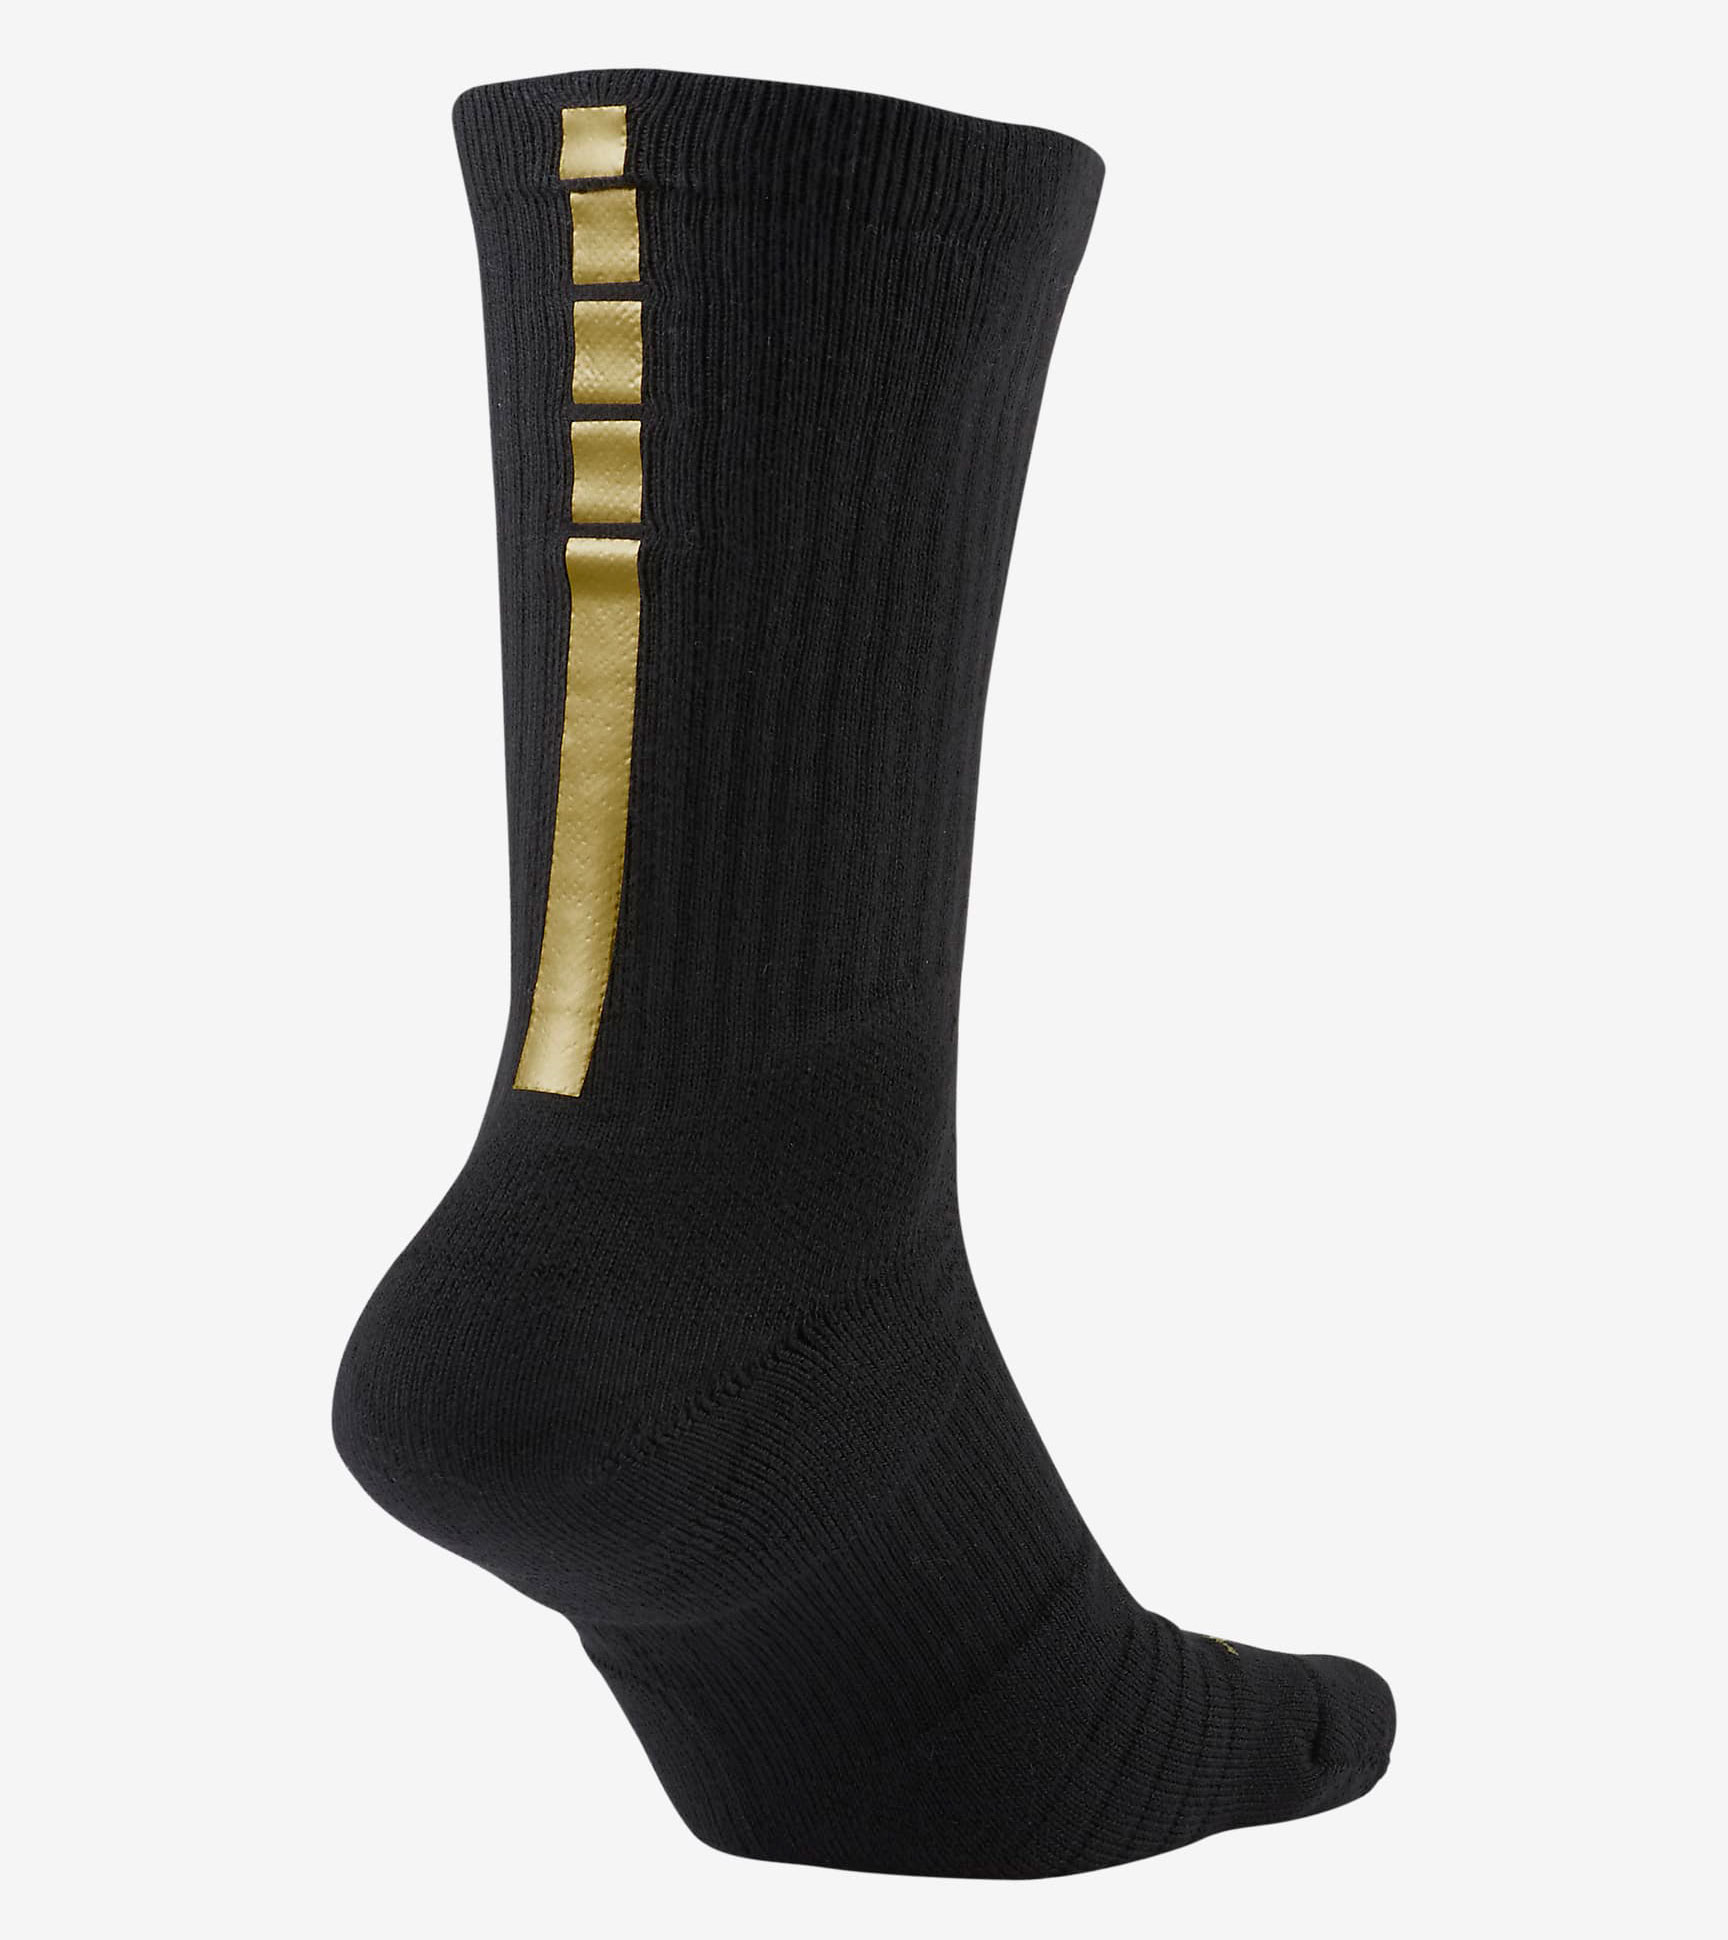 nike-elite-crew-basketball-socks-black-gold-2